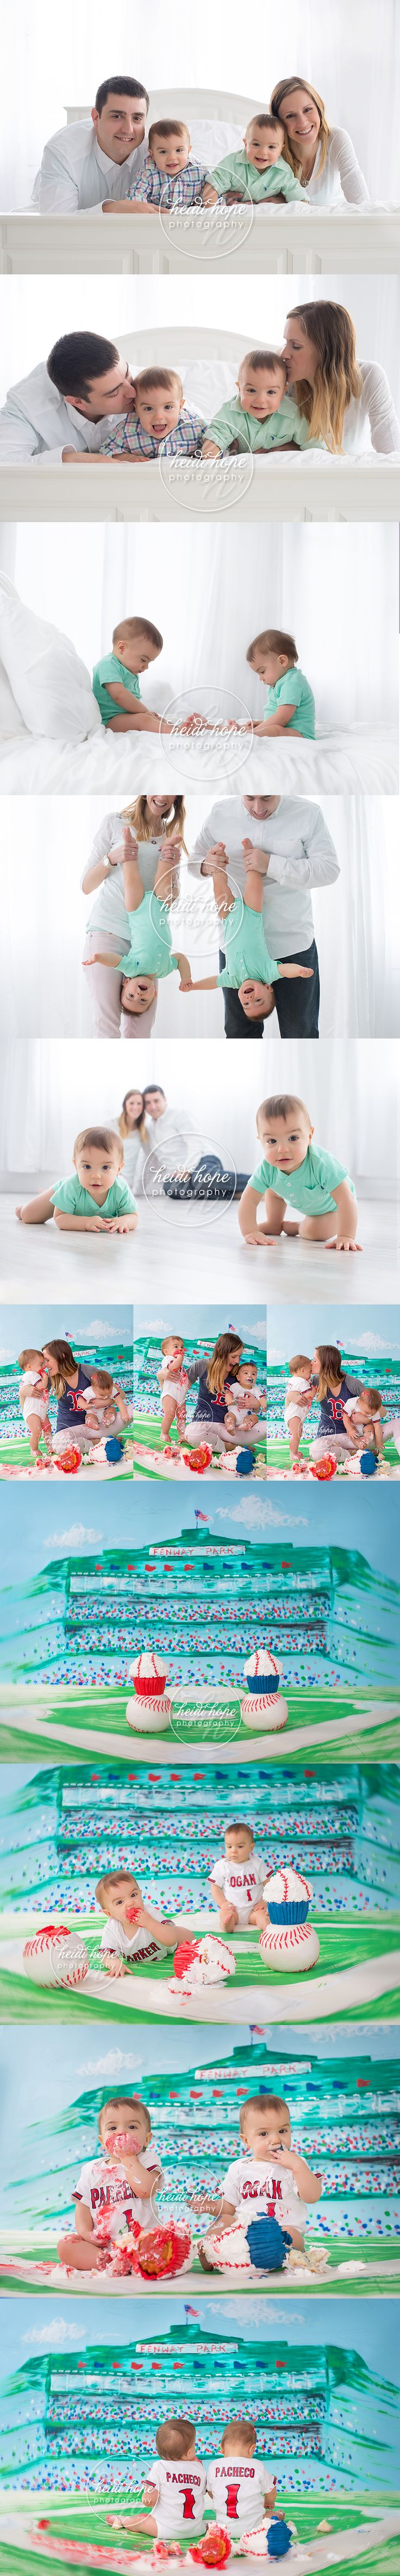 twin boy first birthday cakesmash with fenway baseball background